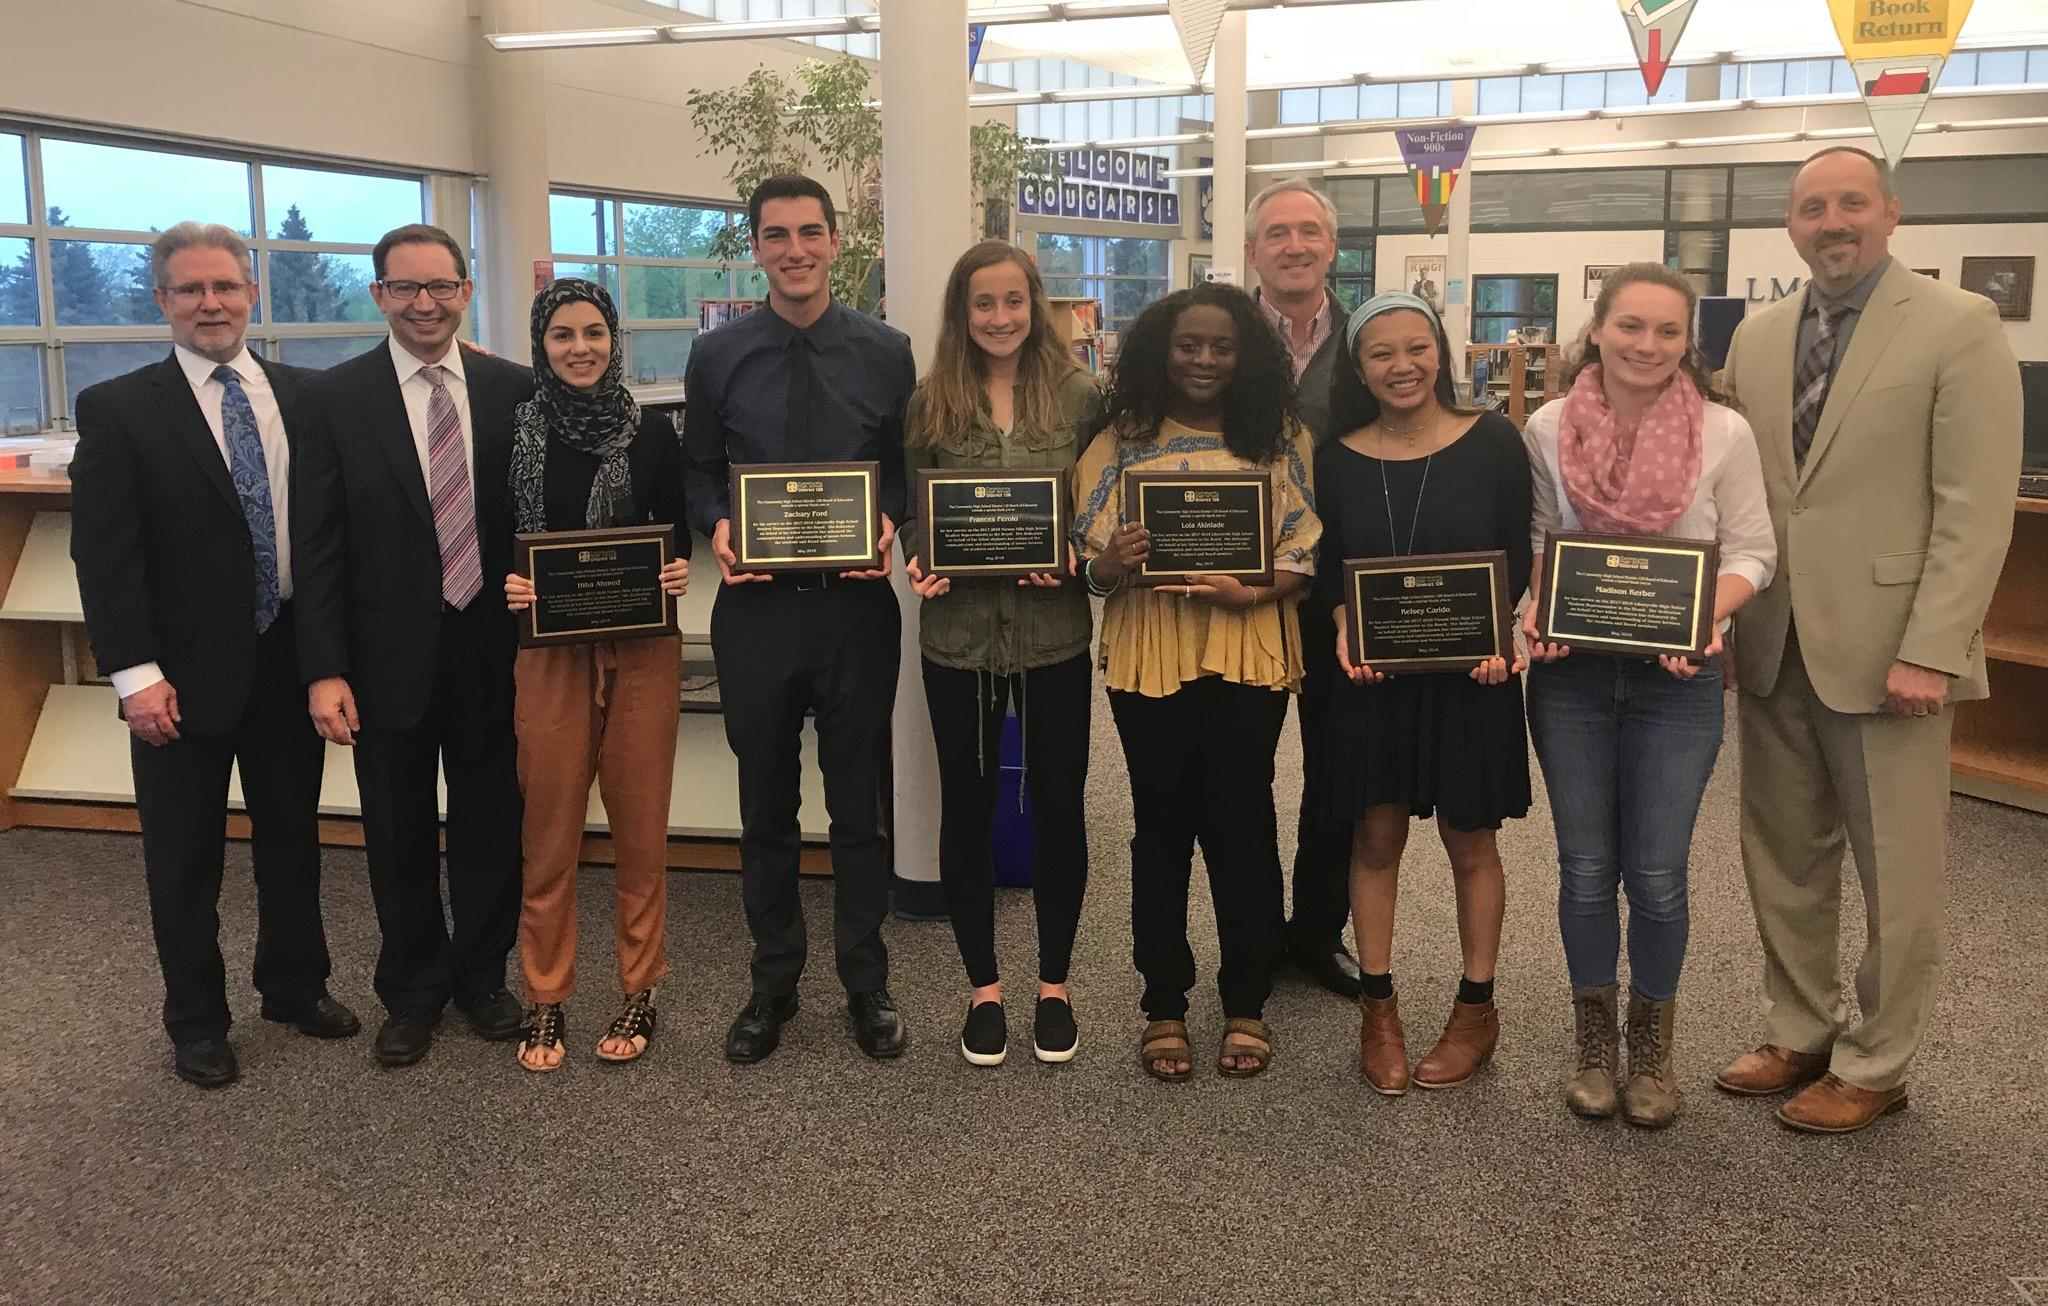 The Board of Education recognizes the 2017-18 Student Board Representatives.